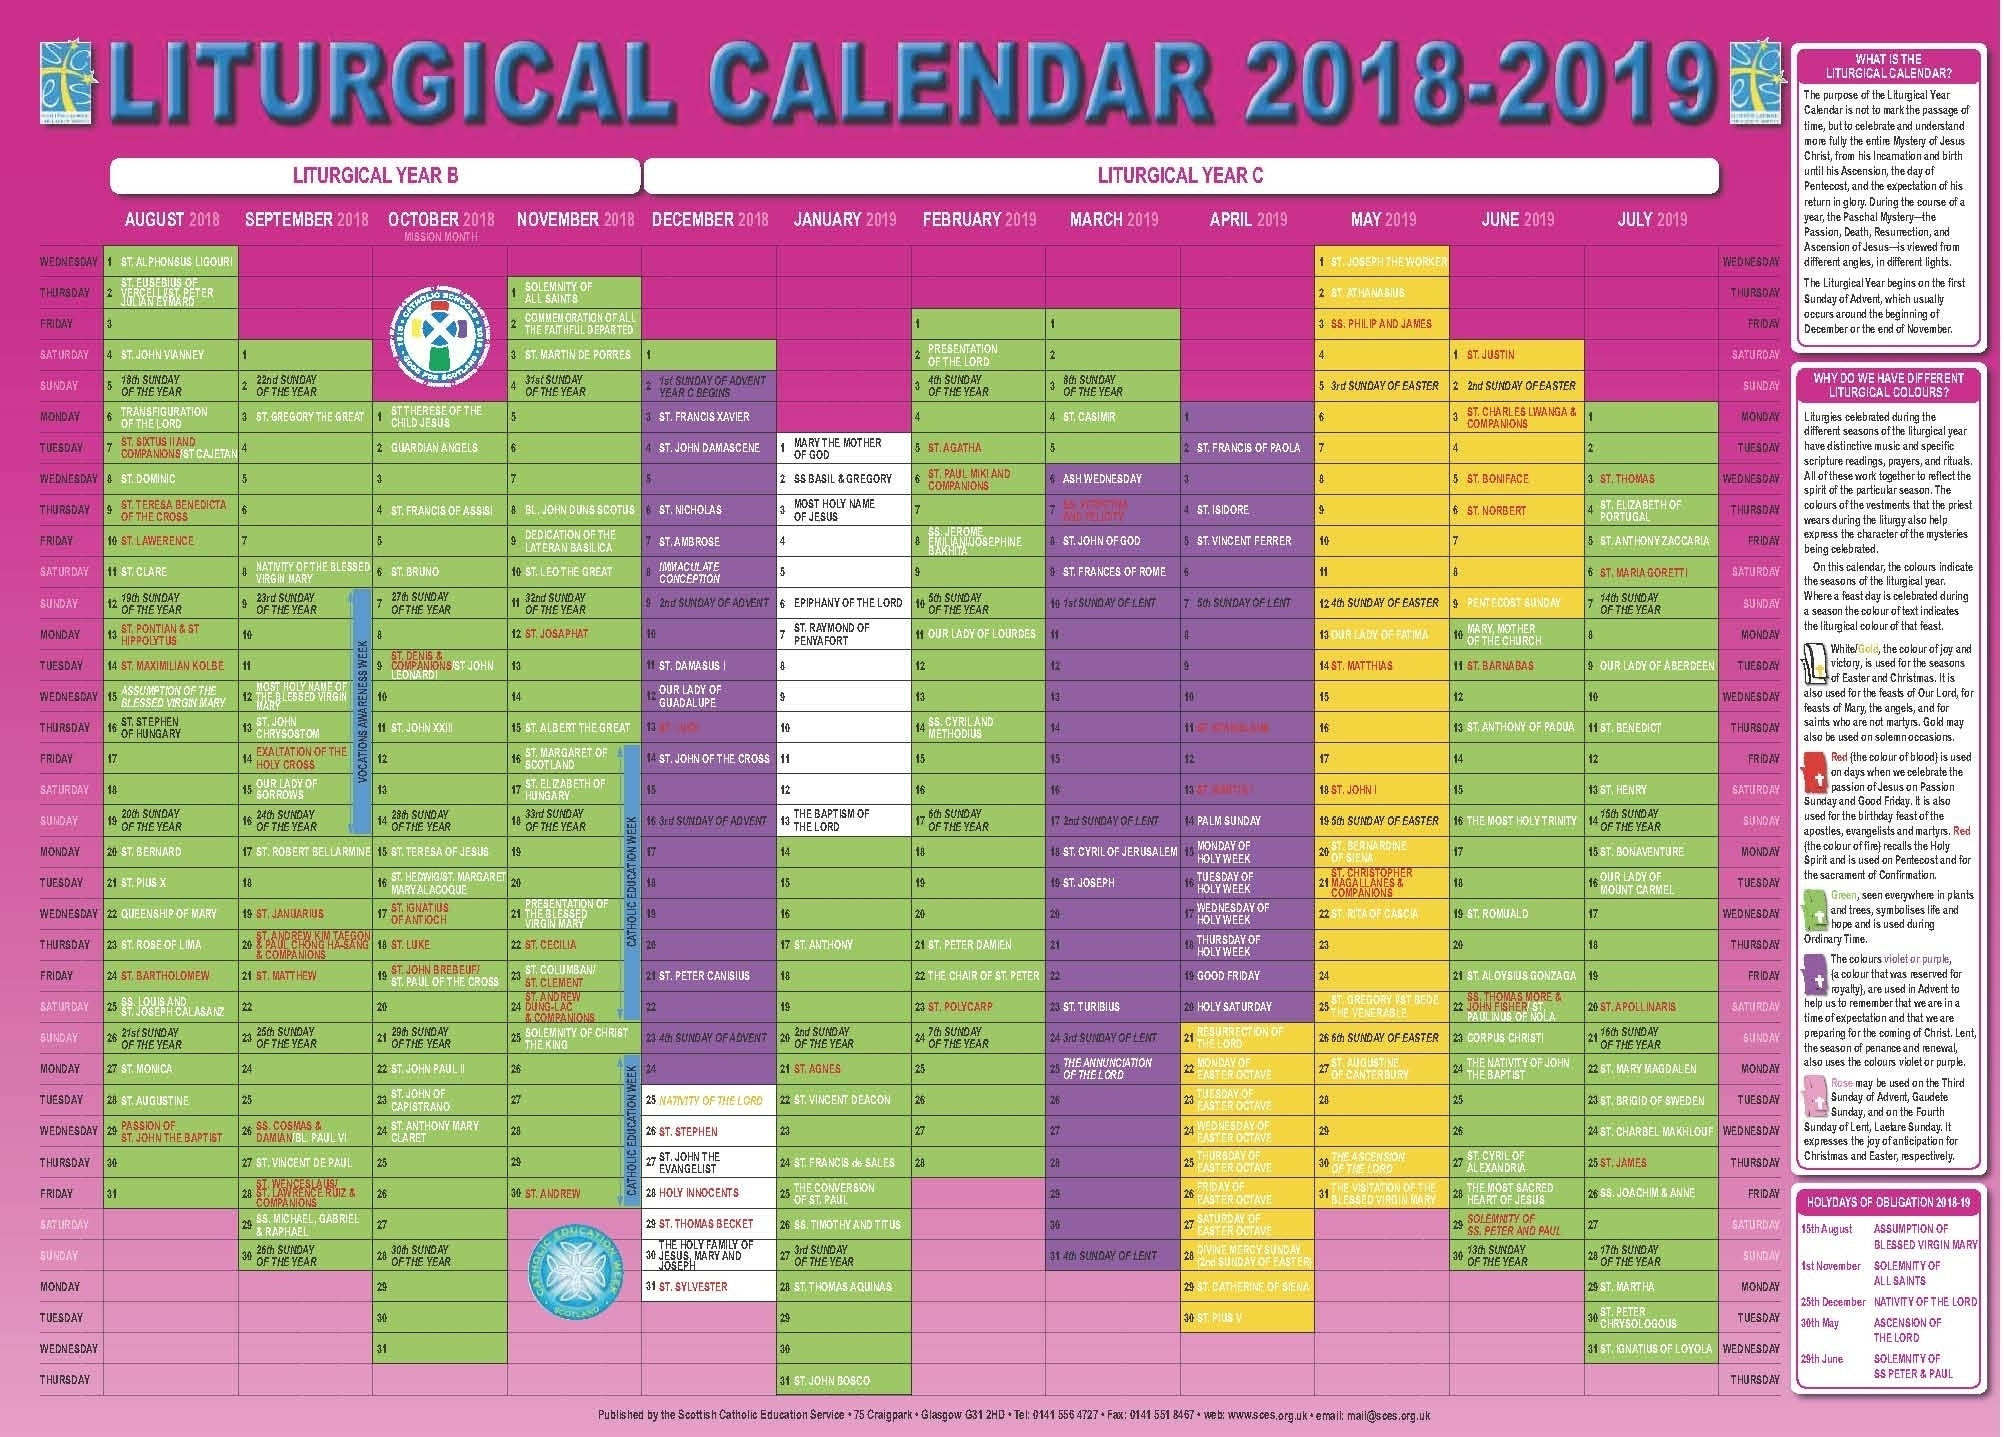 Catholic Liturgical Calendar 2020 Pdf - Calendar Inspiration pertaining to 2020 Catholic Liturgical Calendar Colors